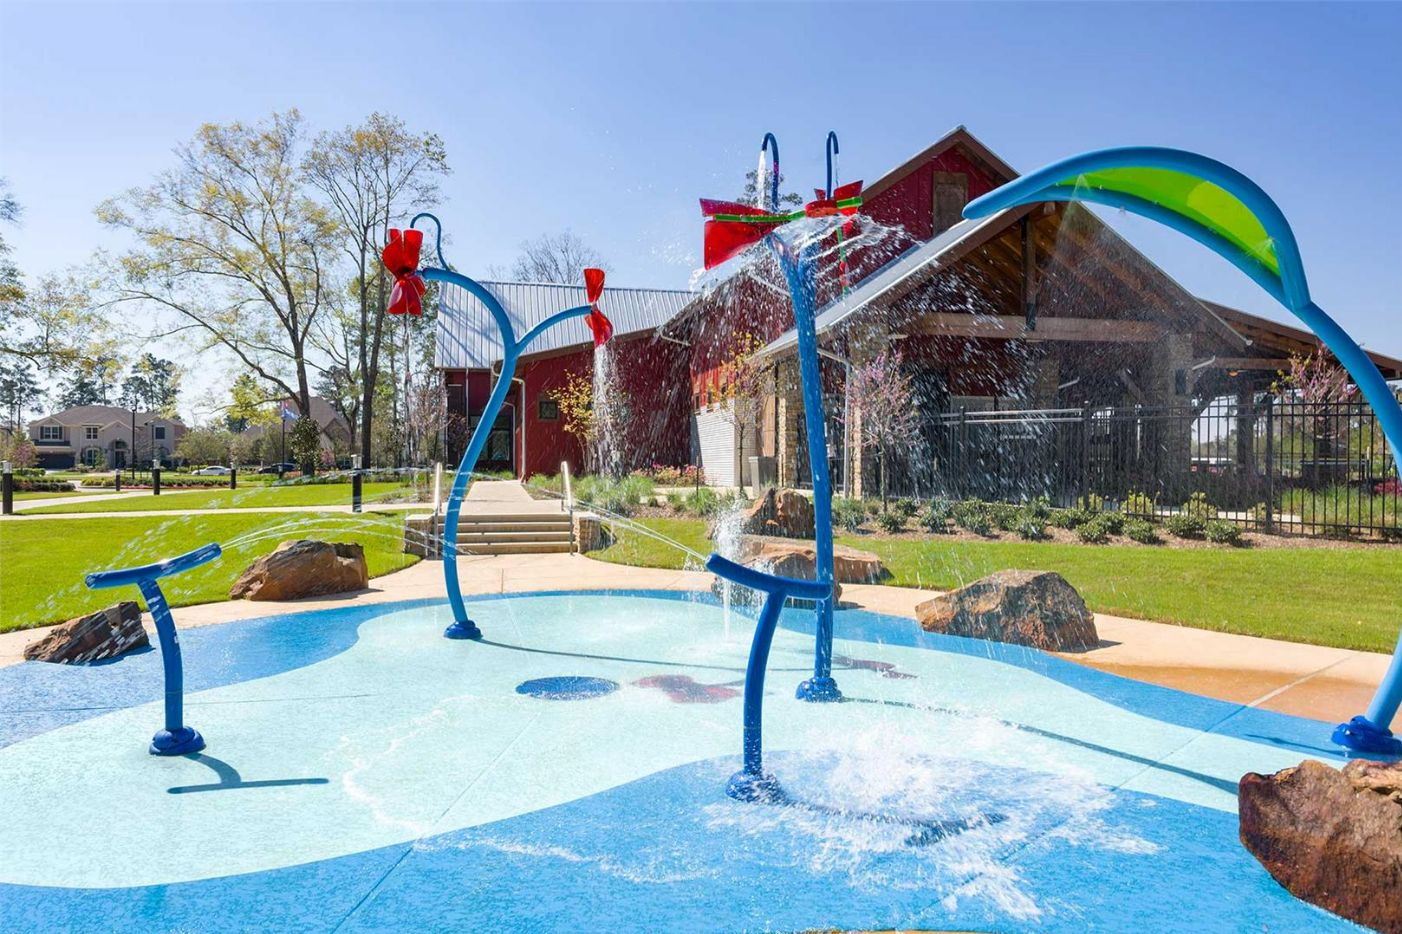 Tavola Park Spring Is The Perfect Season To Enjoy The Outdoor Amenities At